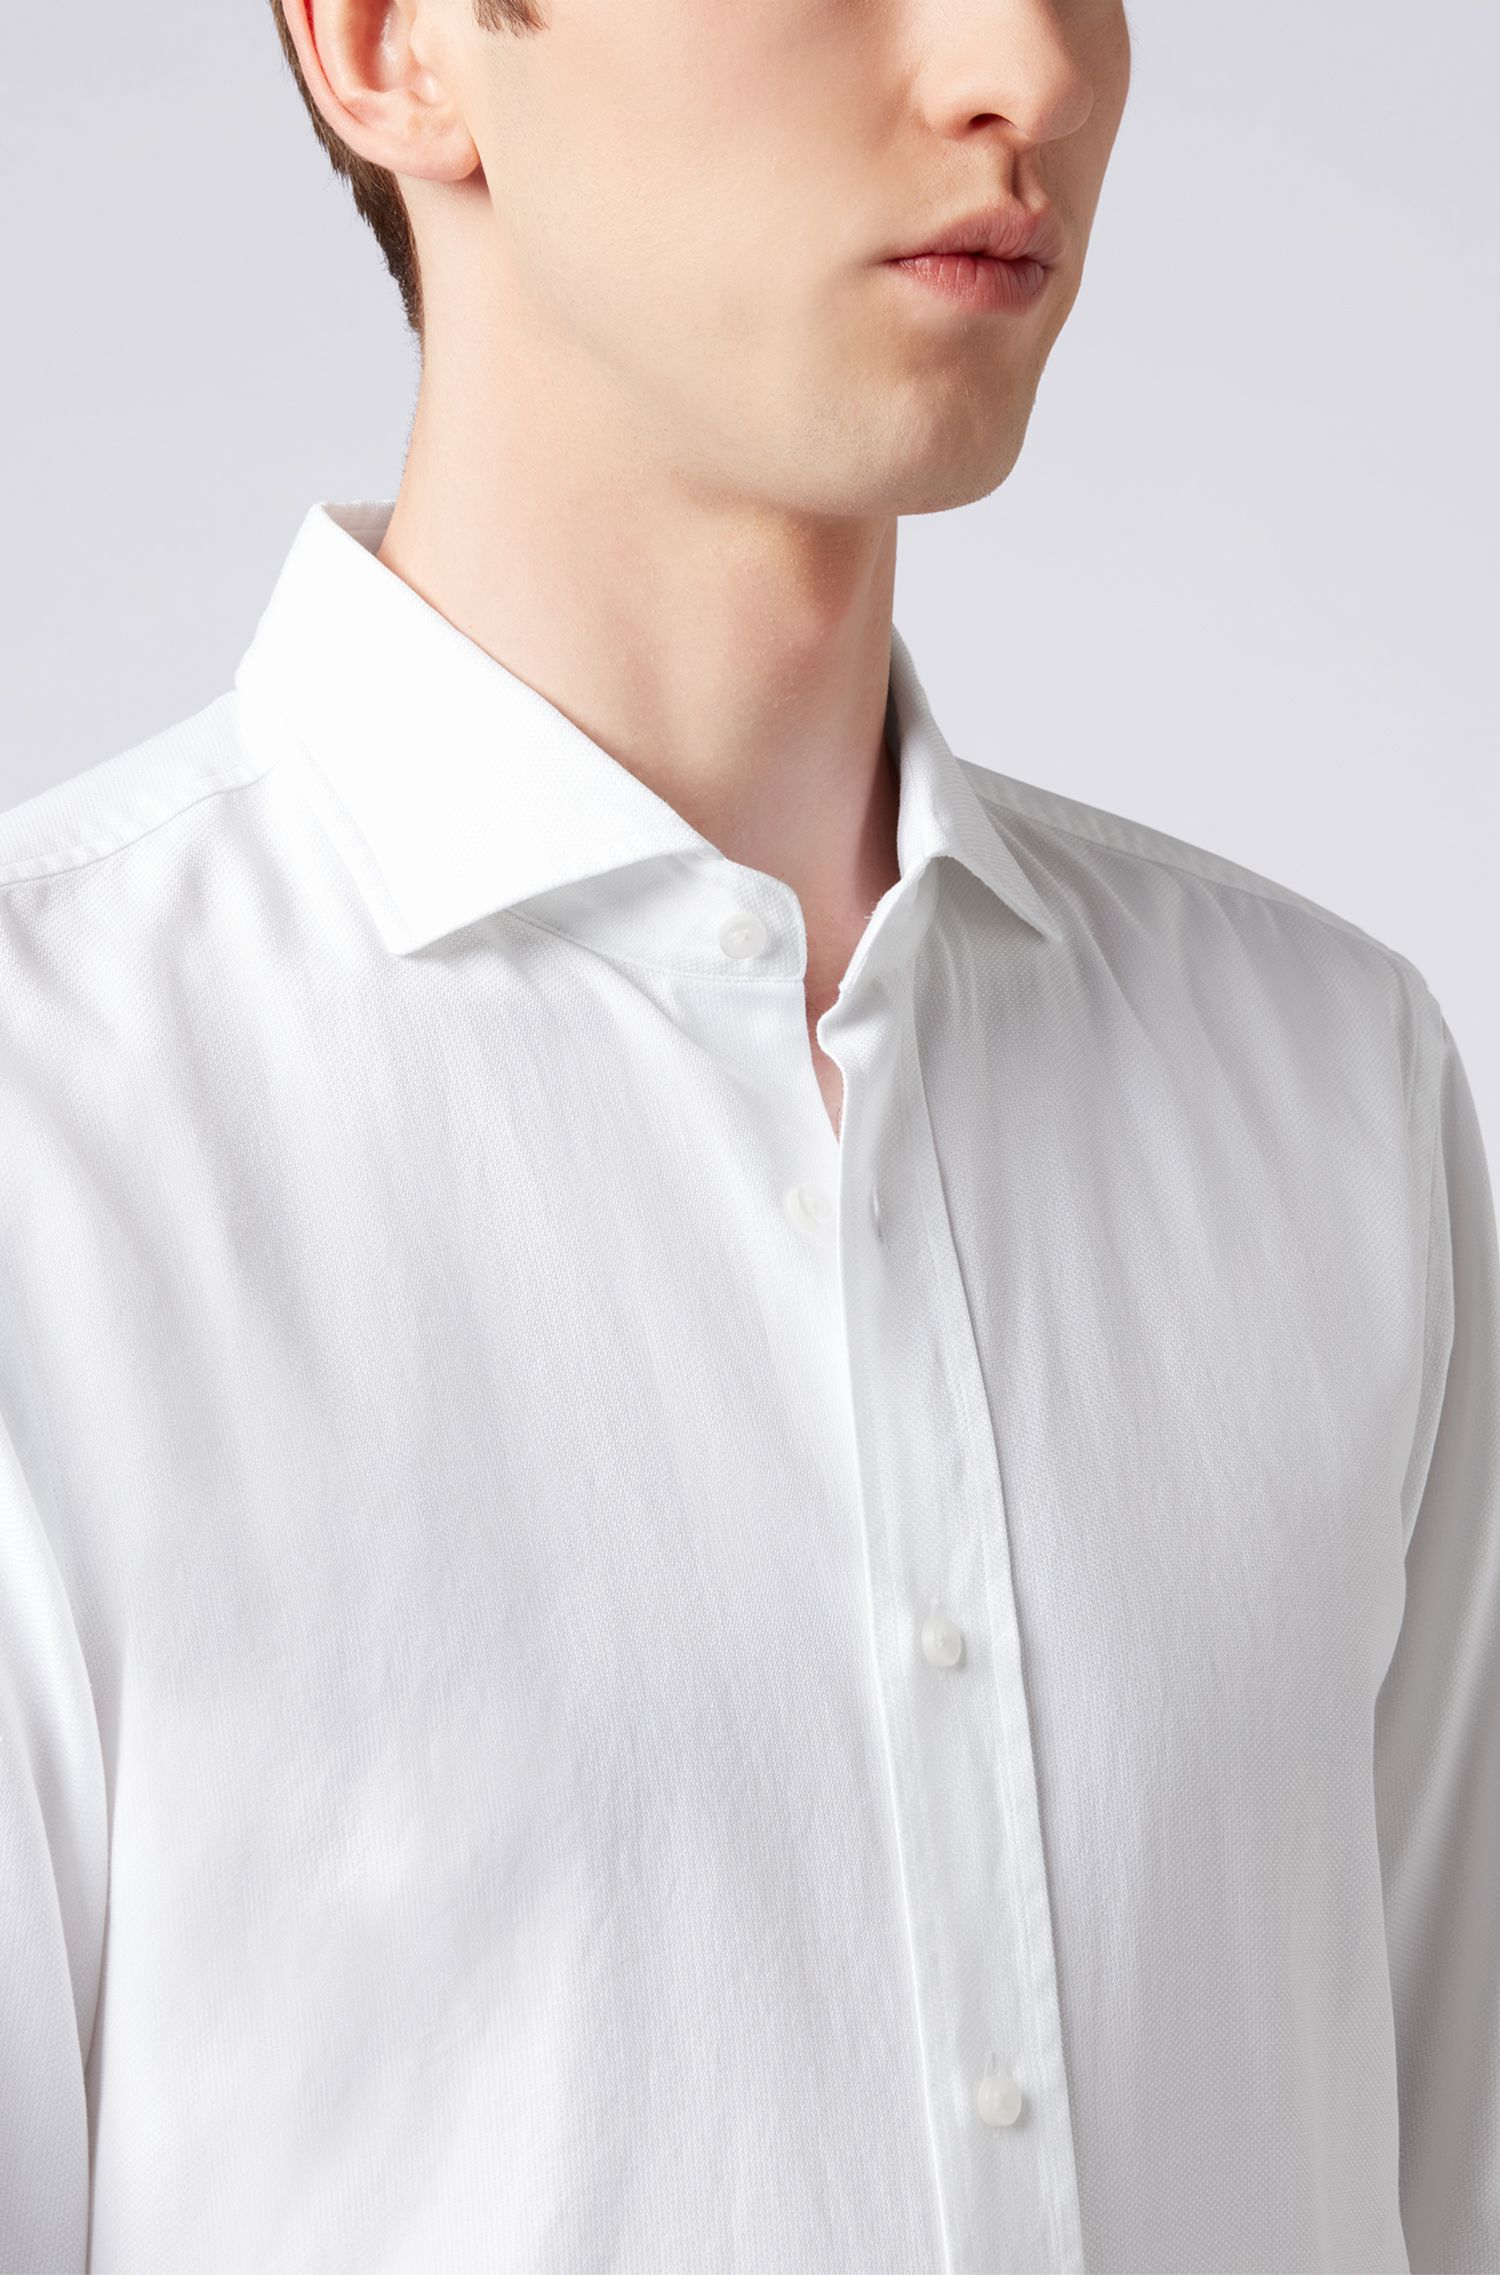 Camisa slim fit de algodón italiano con panel plisado, Blanco